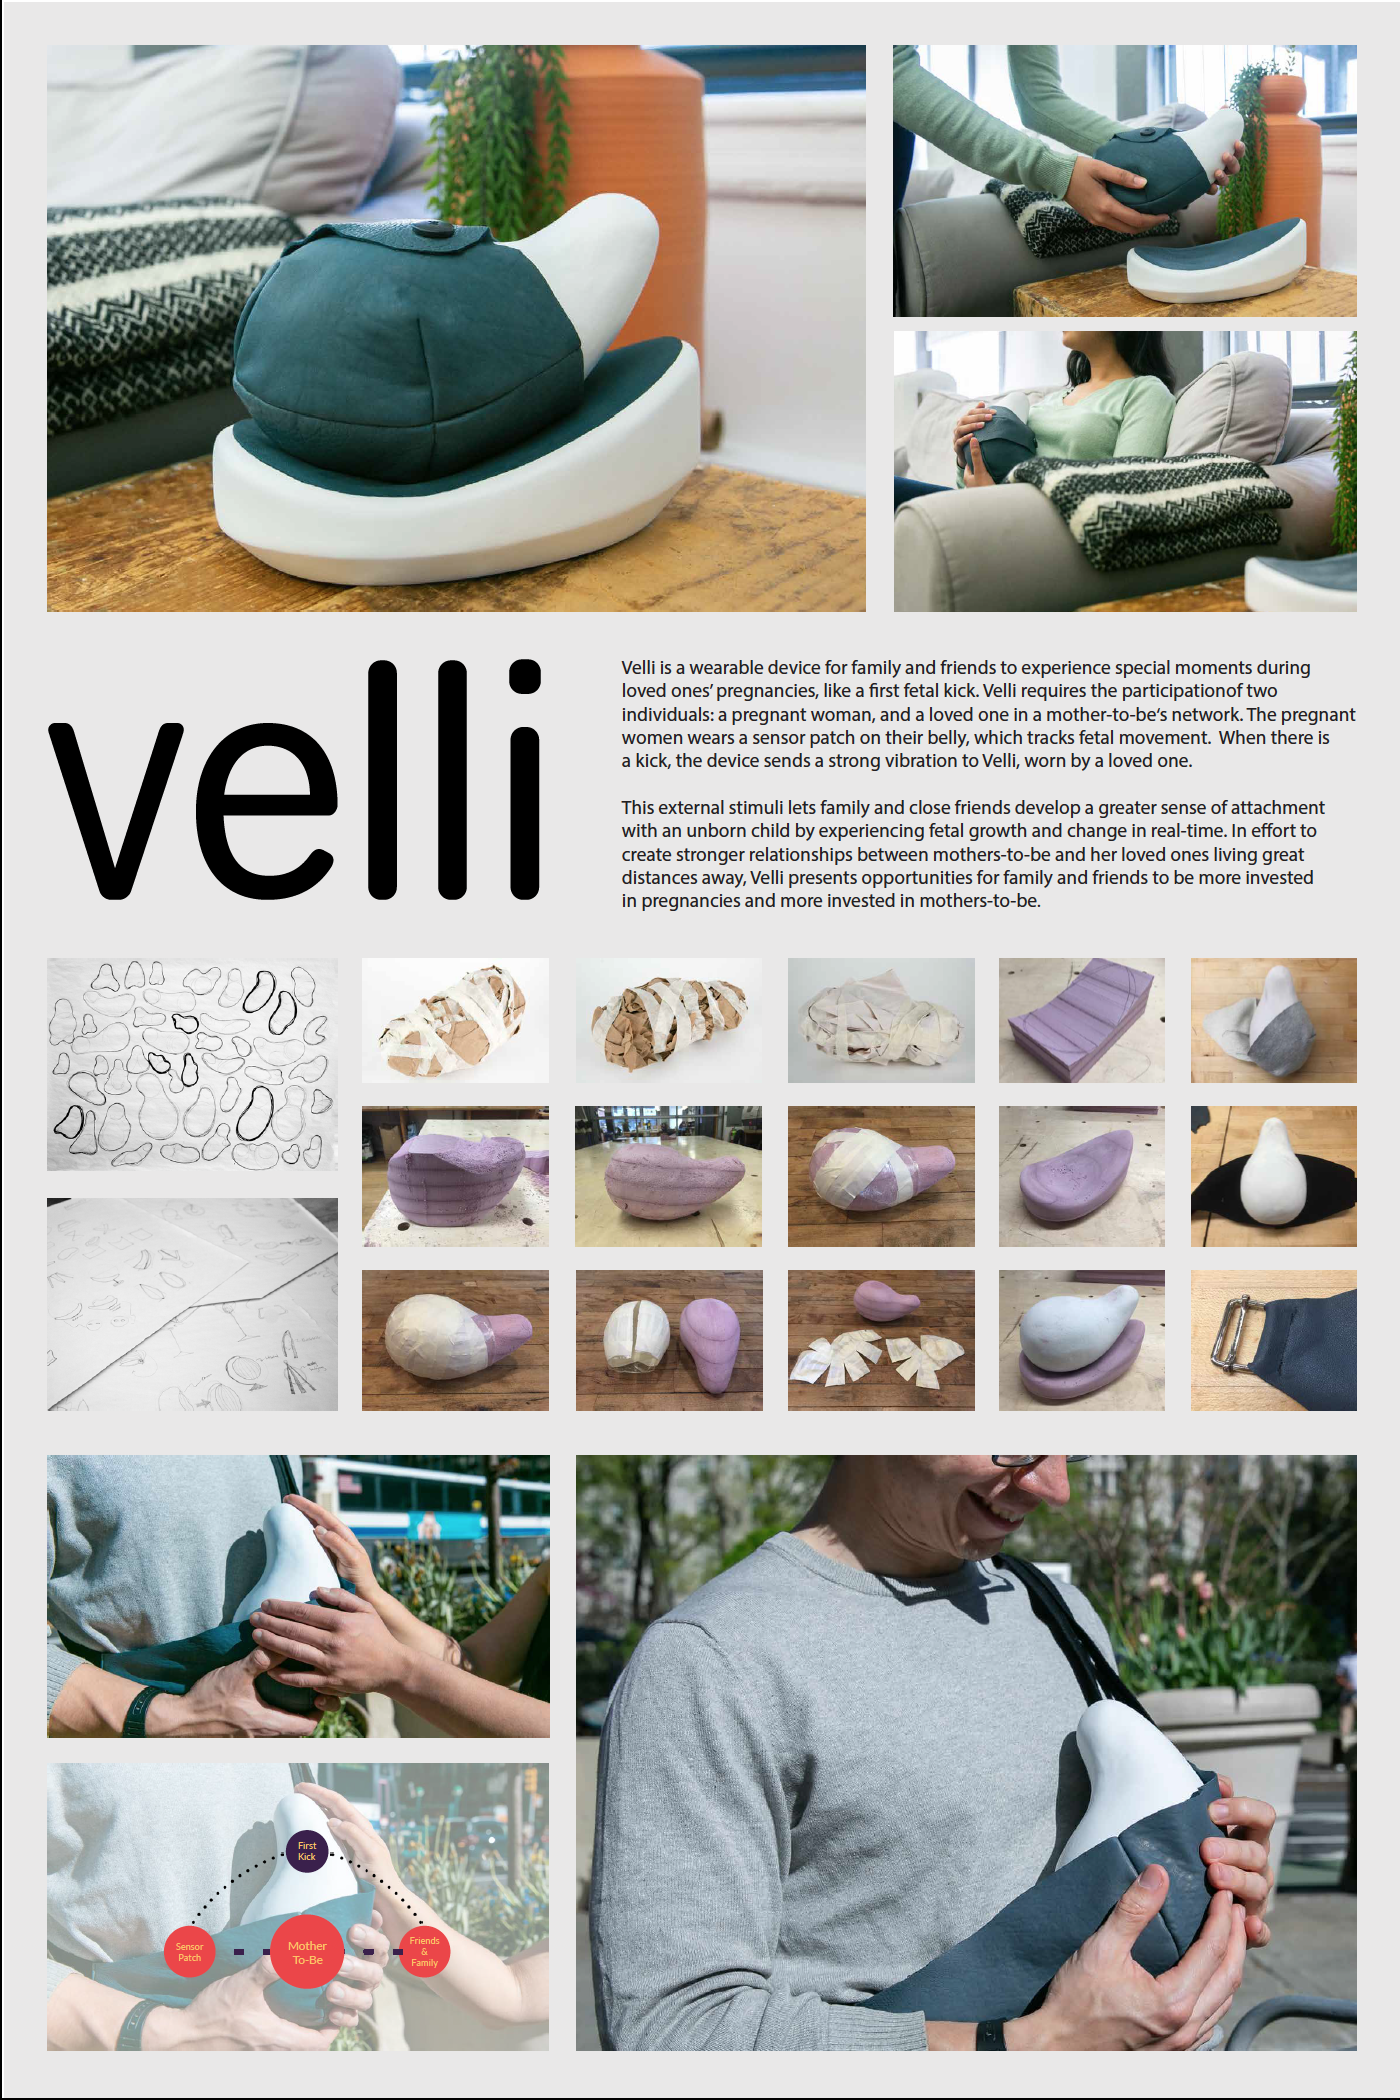 Velli   Carly Simmons  Velli is a wearable device for family and friends to experience special moments during loved ones' pregnancies, like a first fetal kick. Velli requires the participationof two individuals: a pregnant woman, and a loved one in a mother-to-be's network. The pregnant women wears a sensor patch on their belly, which tracks fetal movement. When there is a kick, the device sends a strong vibration to Velli, worn by a loved one.